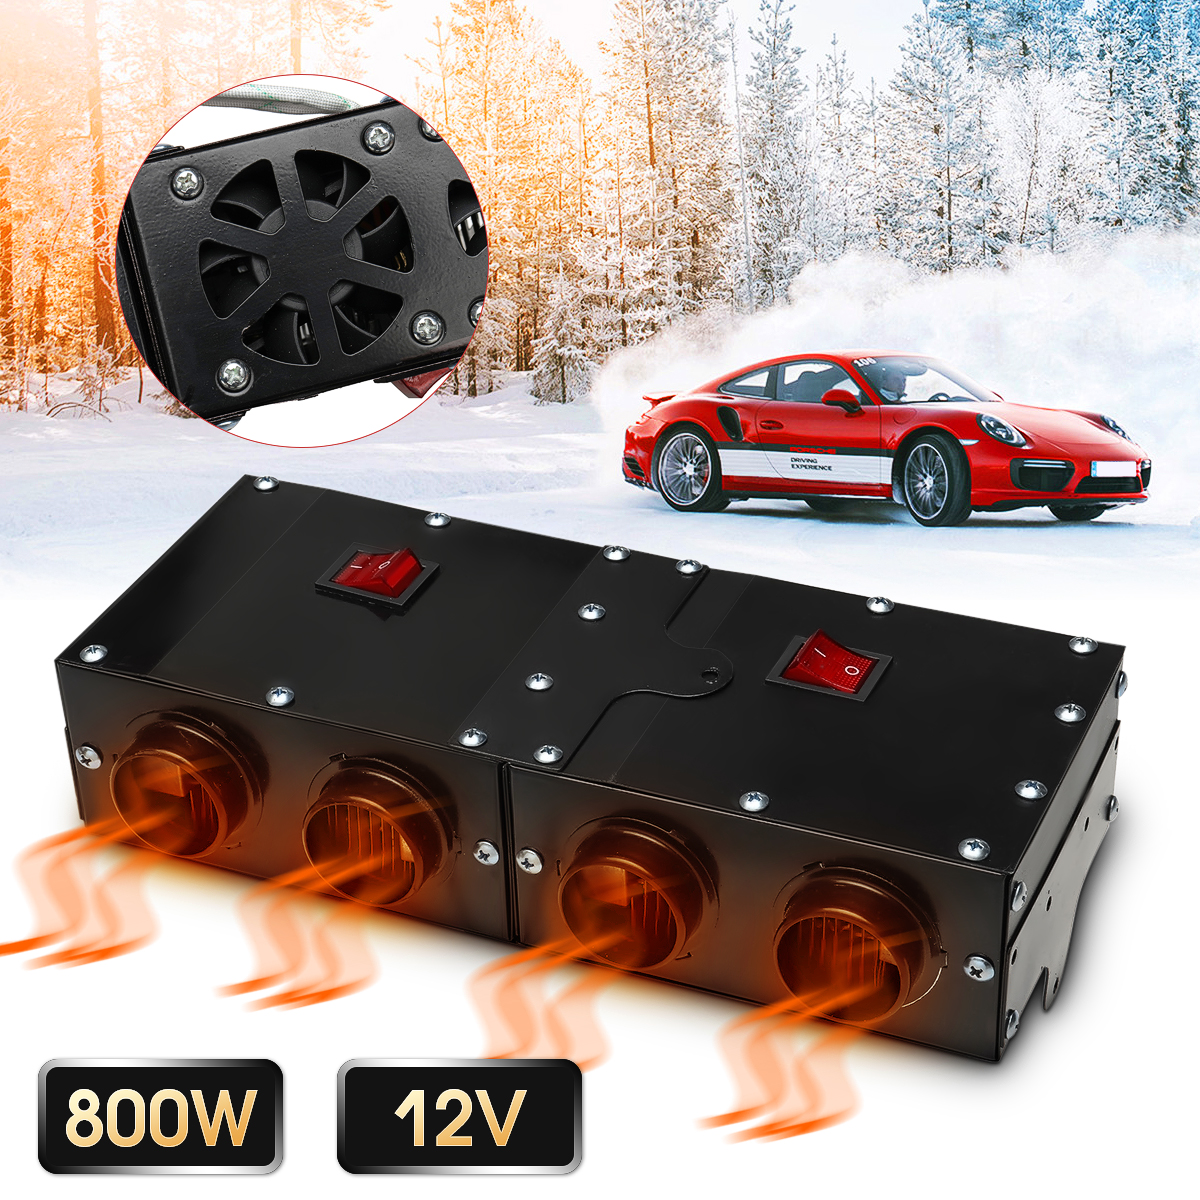 800W 12V Car Windscreen Defrosting Demister Heating Warmer Car Heater with Four Fans